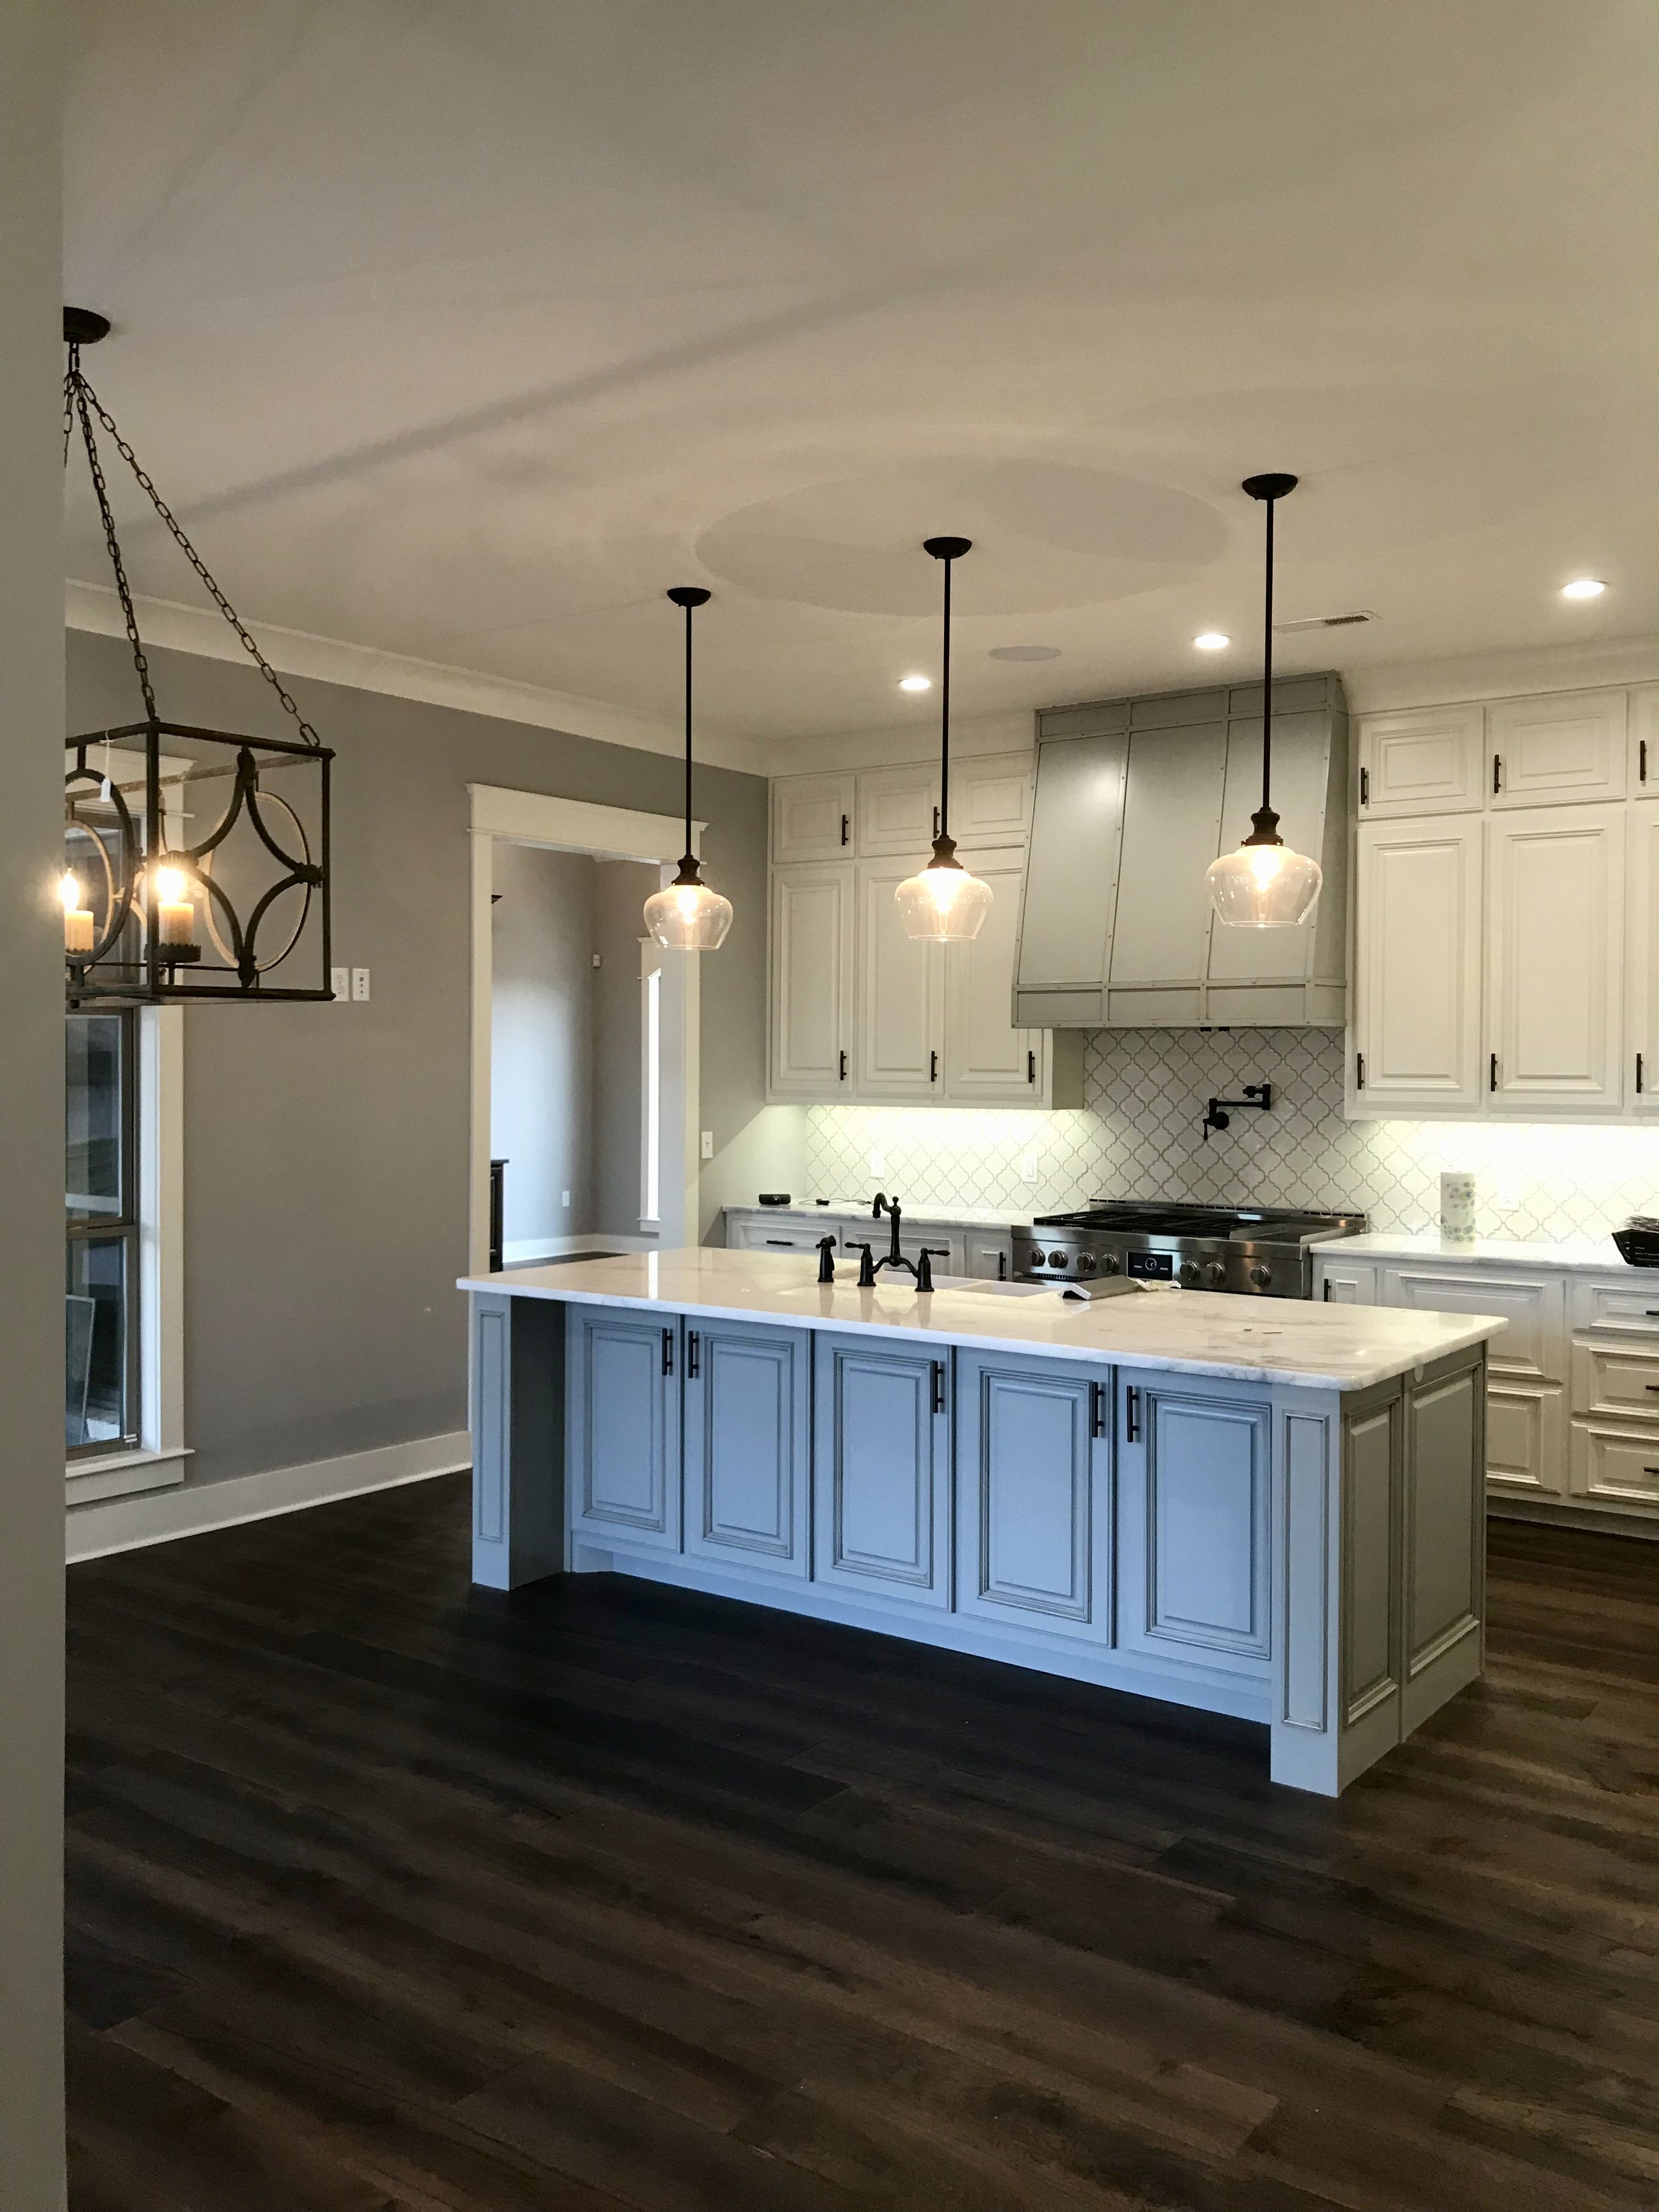 Best Wall Color Sherwin Williams Colonnade Gray Sw 7641 400 x 300